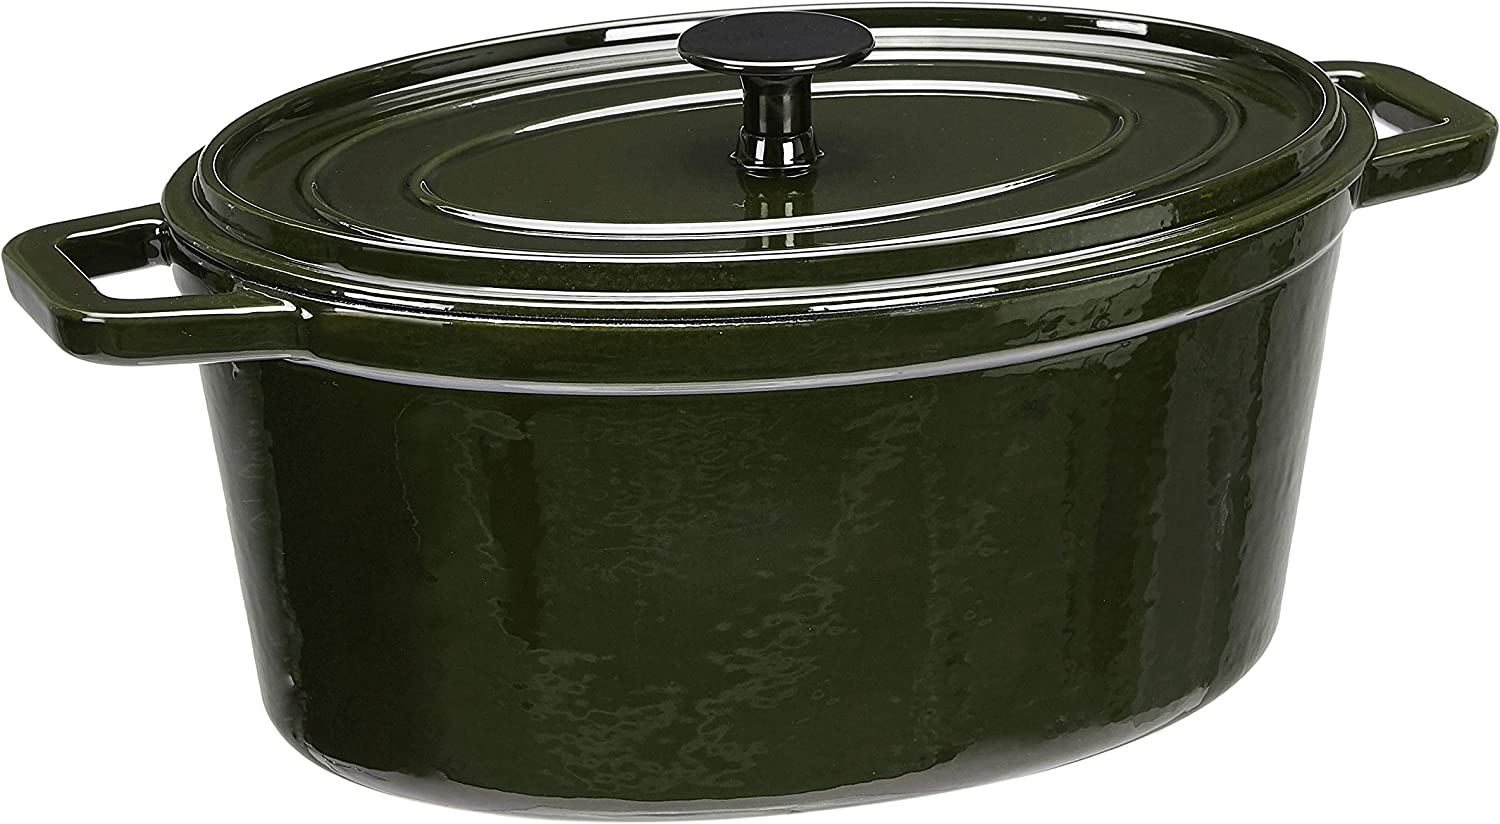 AmazonBasics Z4715MG Premium Enameled Cast Iron Oval Dutch Oven, 6-Quart, Deep Hunter Green